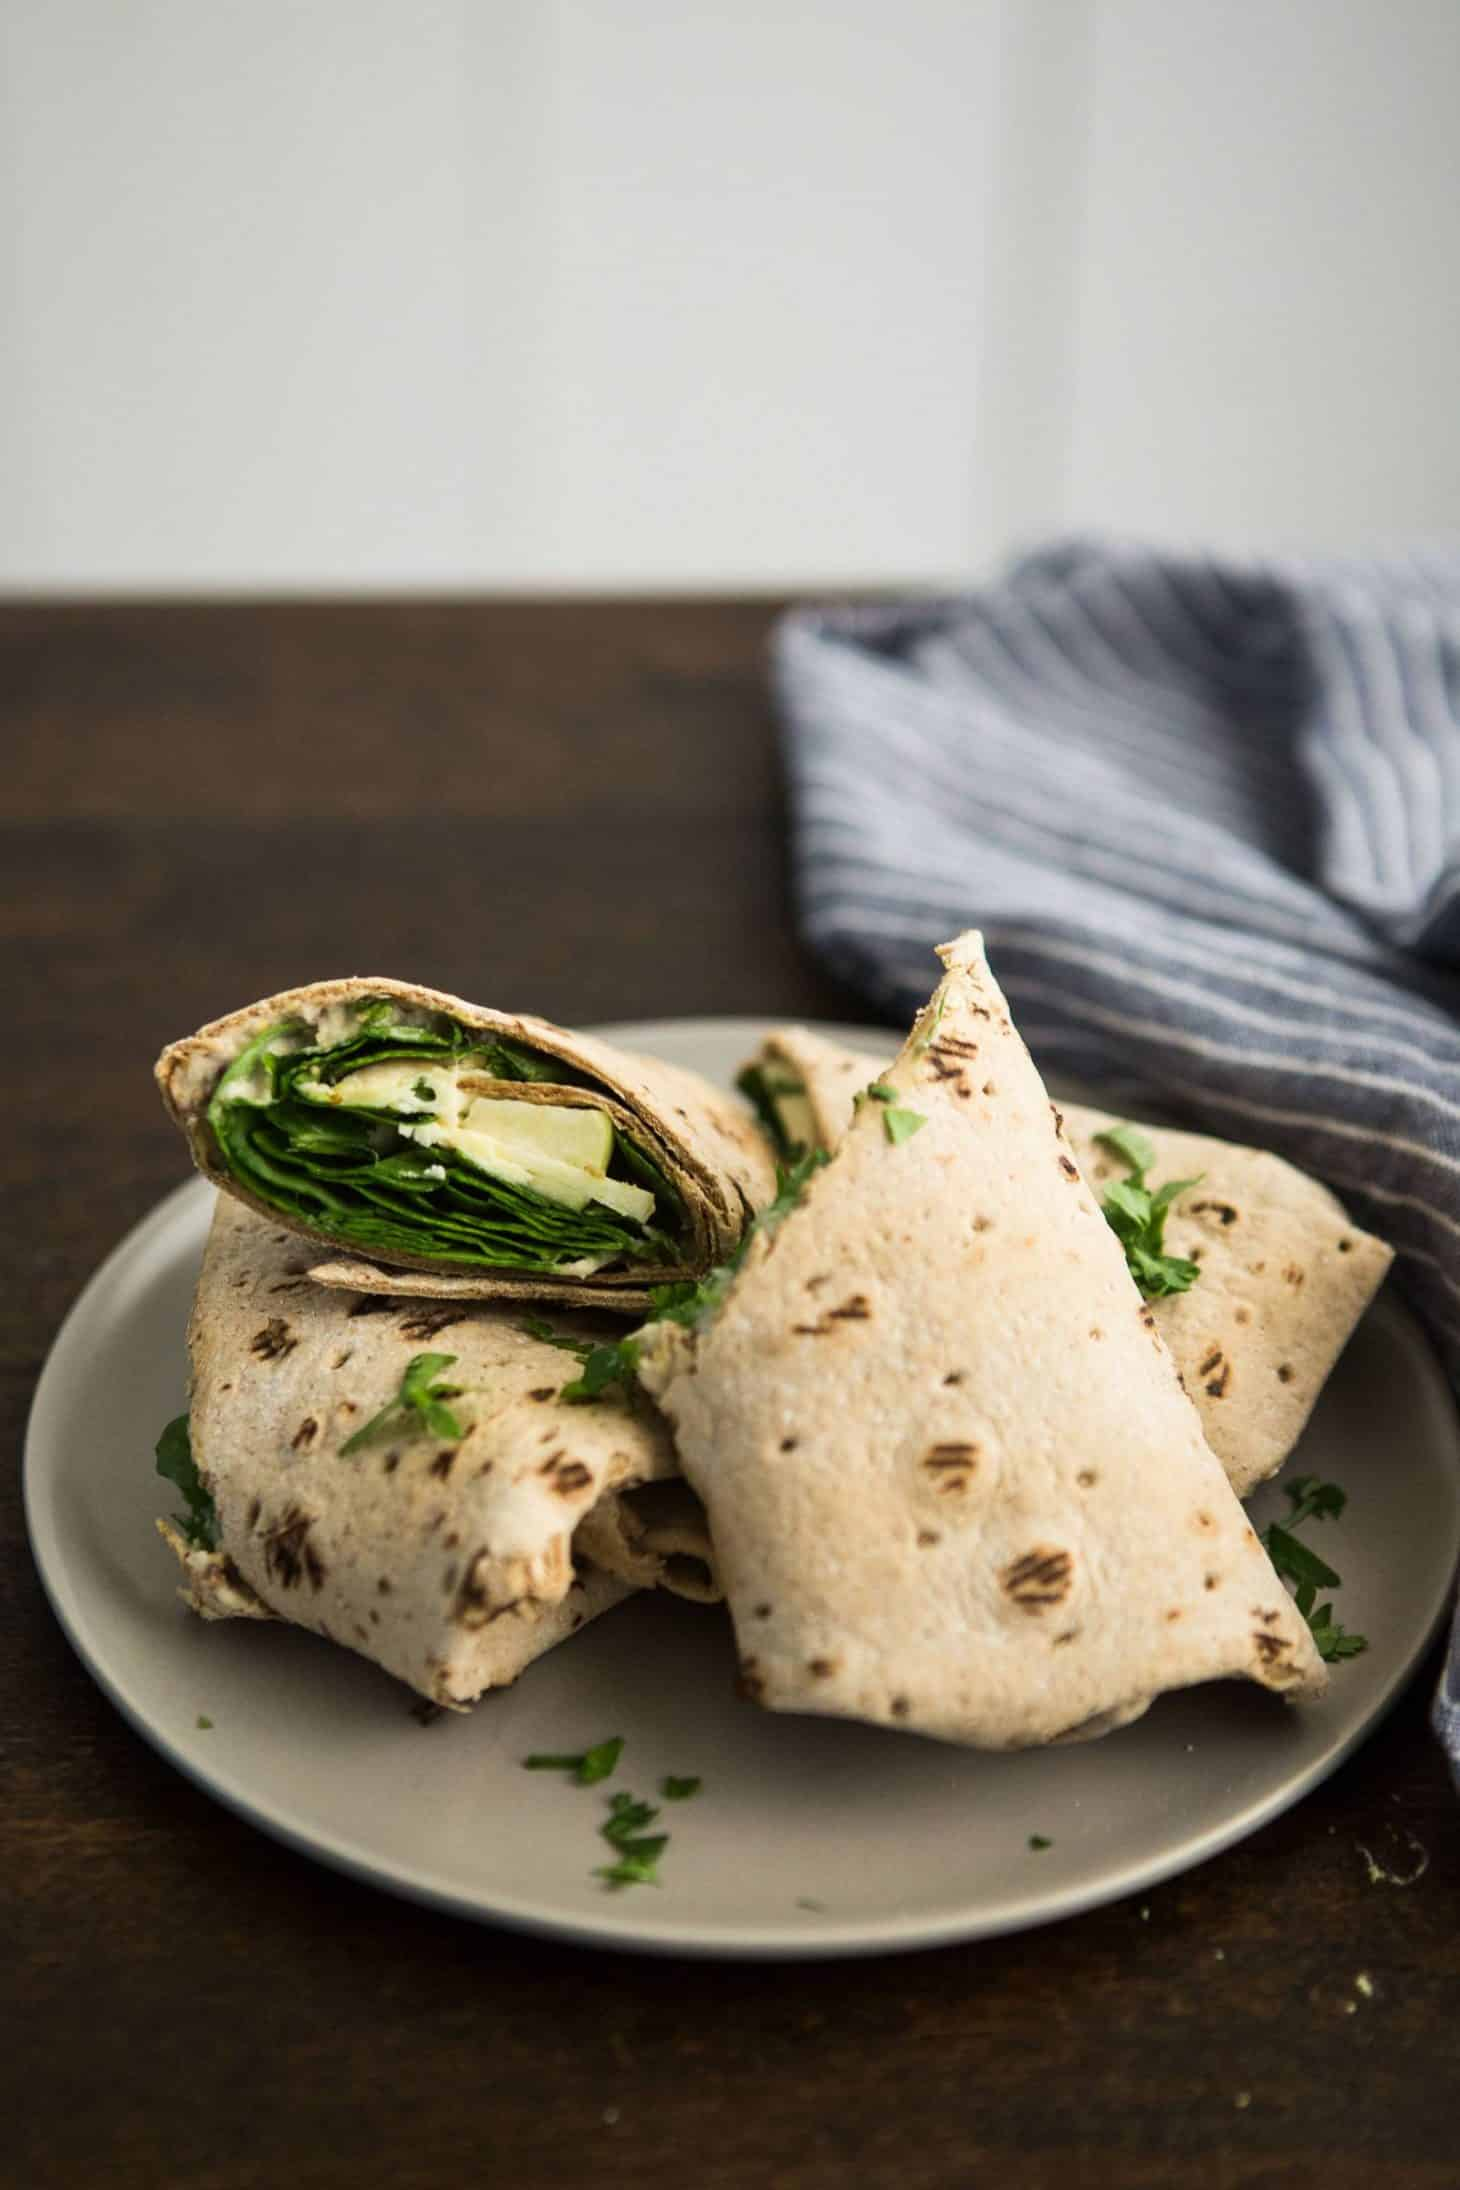 Apple Wrap with Cheese, spinach and Mustard Hummus | @naturallyella